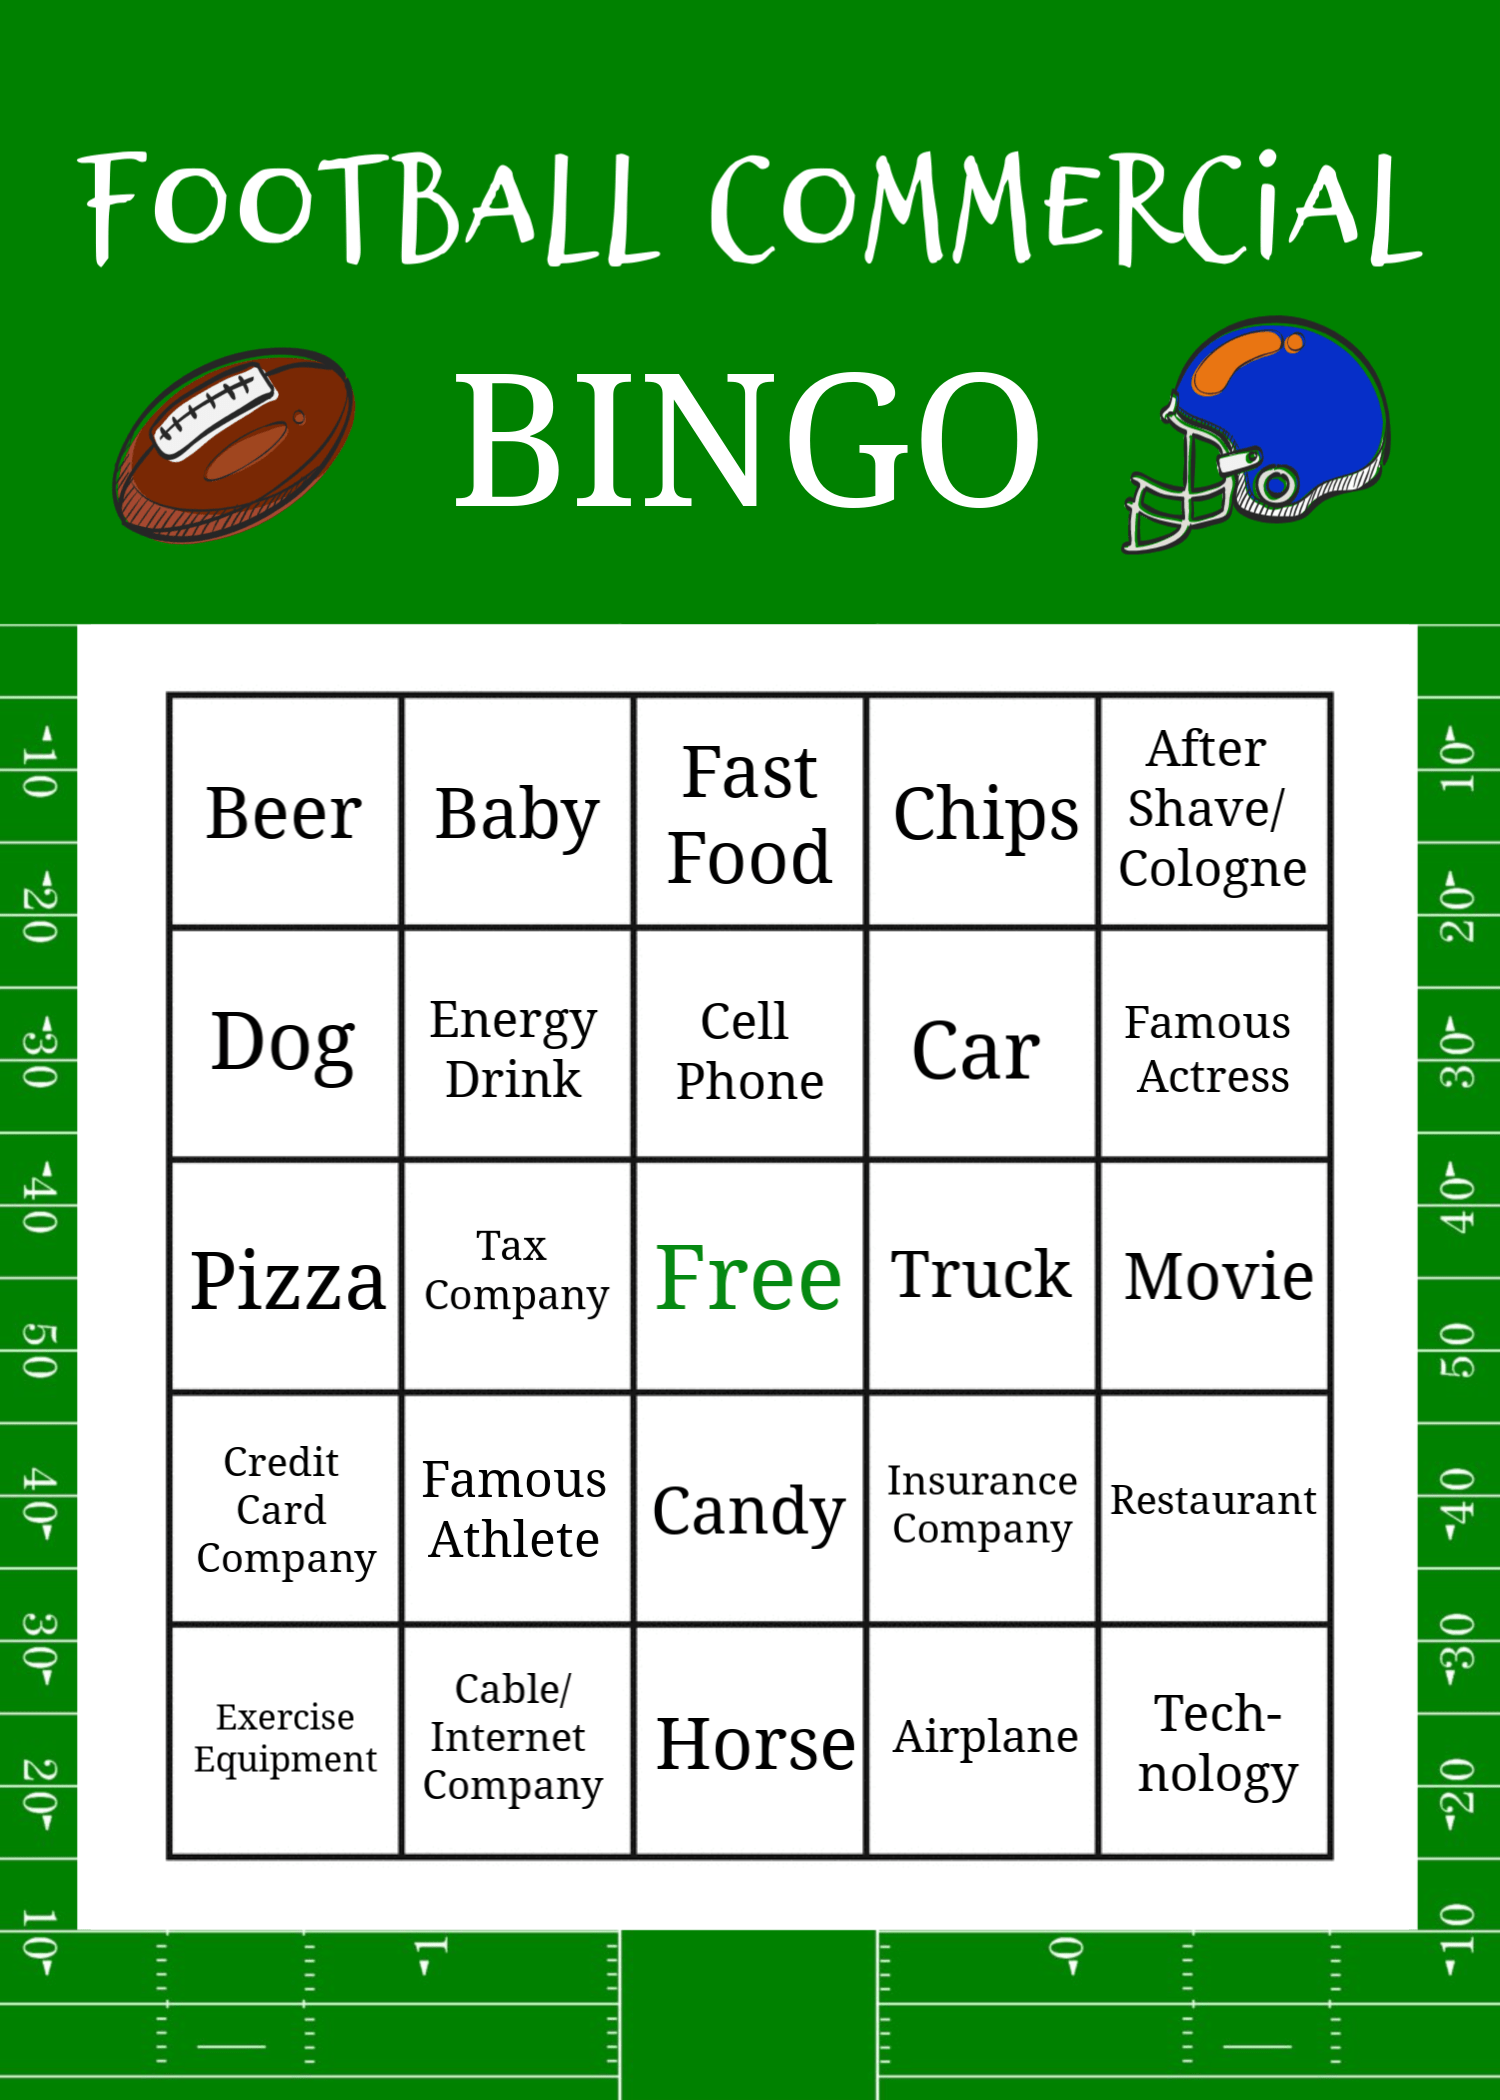 Superbowl Commercial Bingo Game Boards